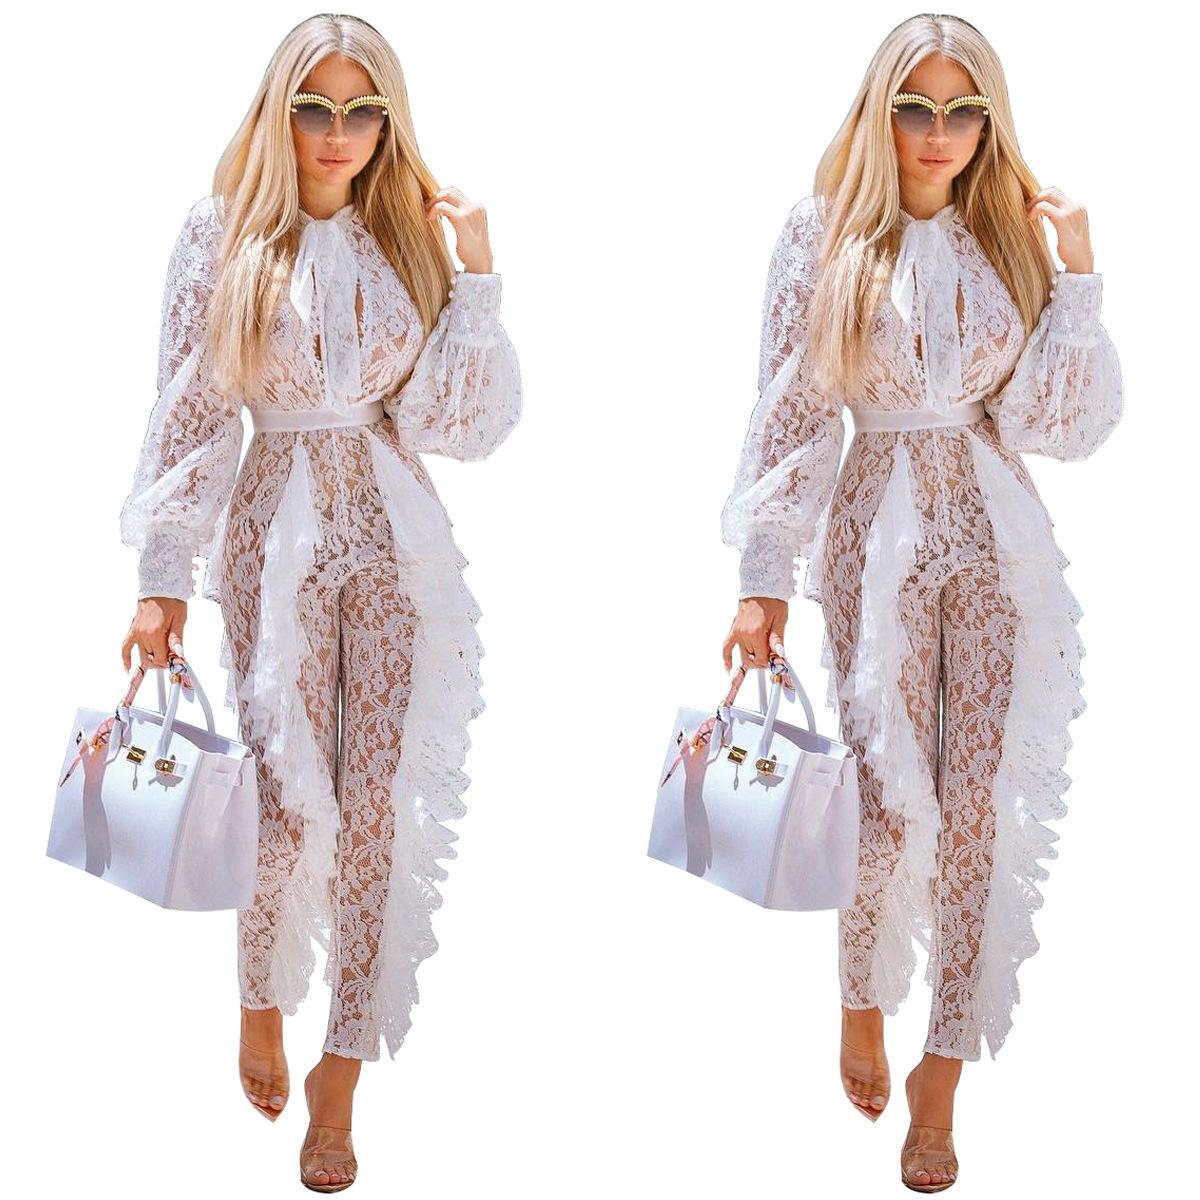 81ae5d2a 2019 Ruffle Sheer Lace Jumpsuit Bow Tie Neck Lantern Long Sleeve Romper  Elegant Women Rompers High Quality Night Club Overall Hot Selling From  Bikini_trade, ...